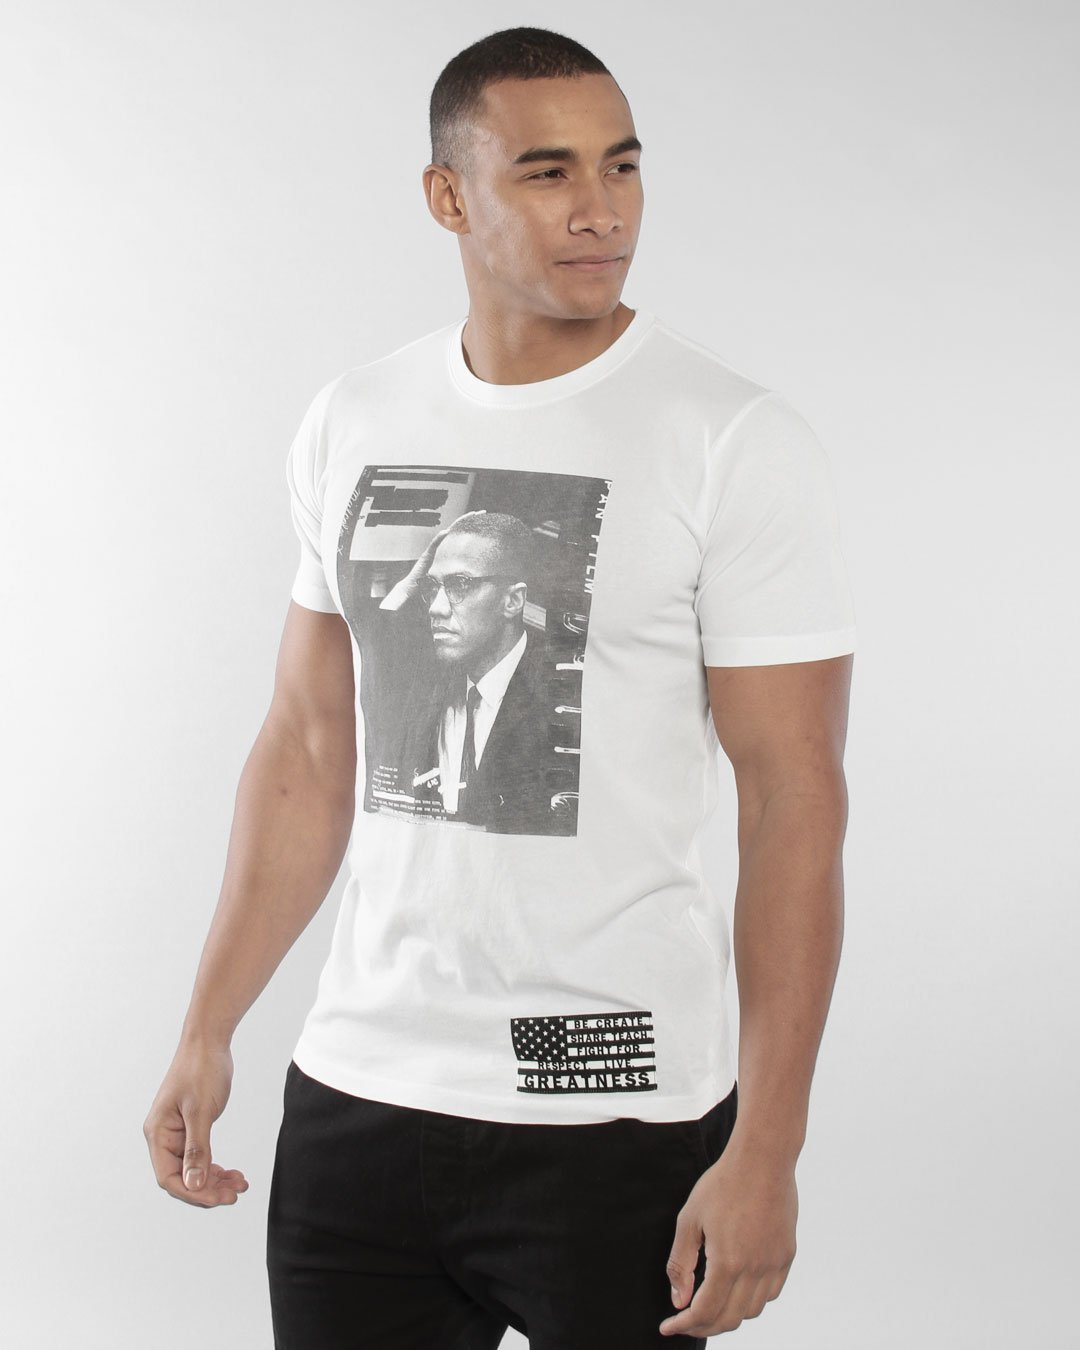 BHT - Malcolm X Redacted Photo Tee - Roots of Inc dba Roots of Fight